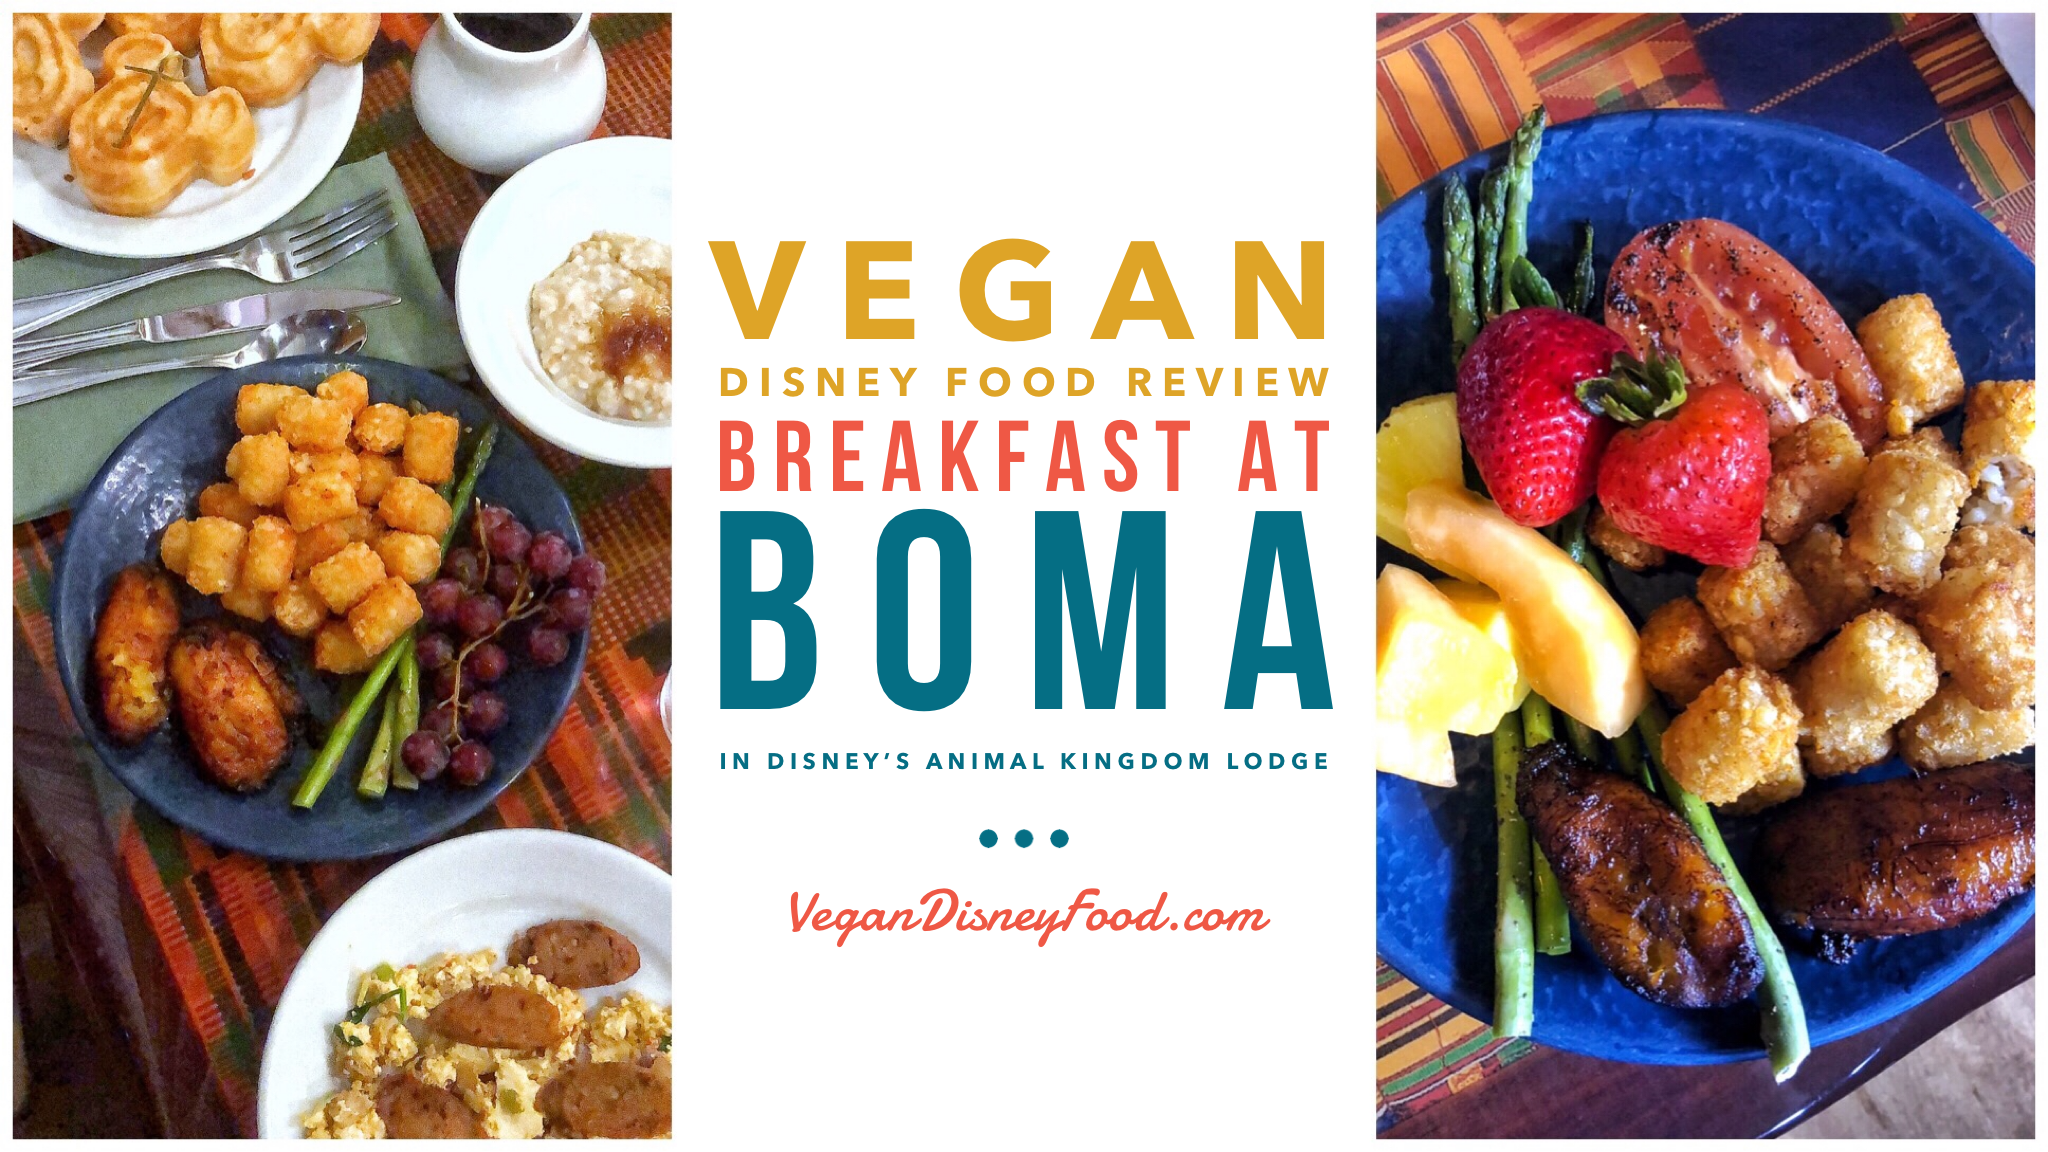 Vegan Disney Food Review: Breakfast at Boma in Disney's Animal Kingdom Lodge at Walt Disney World